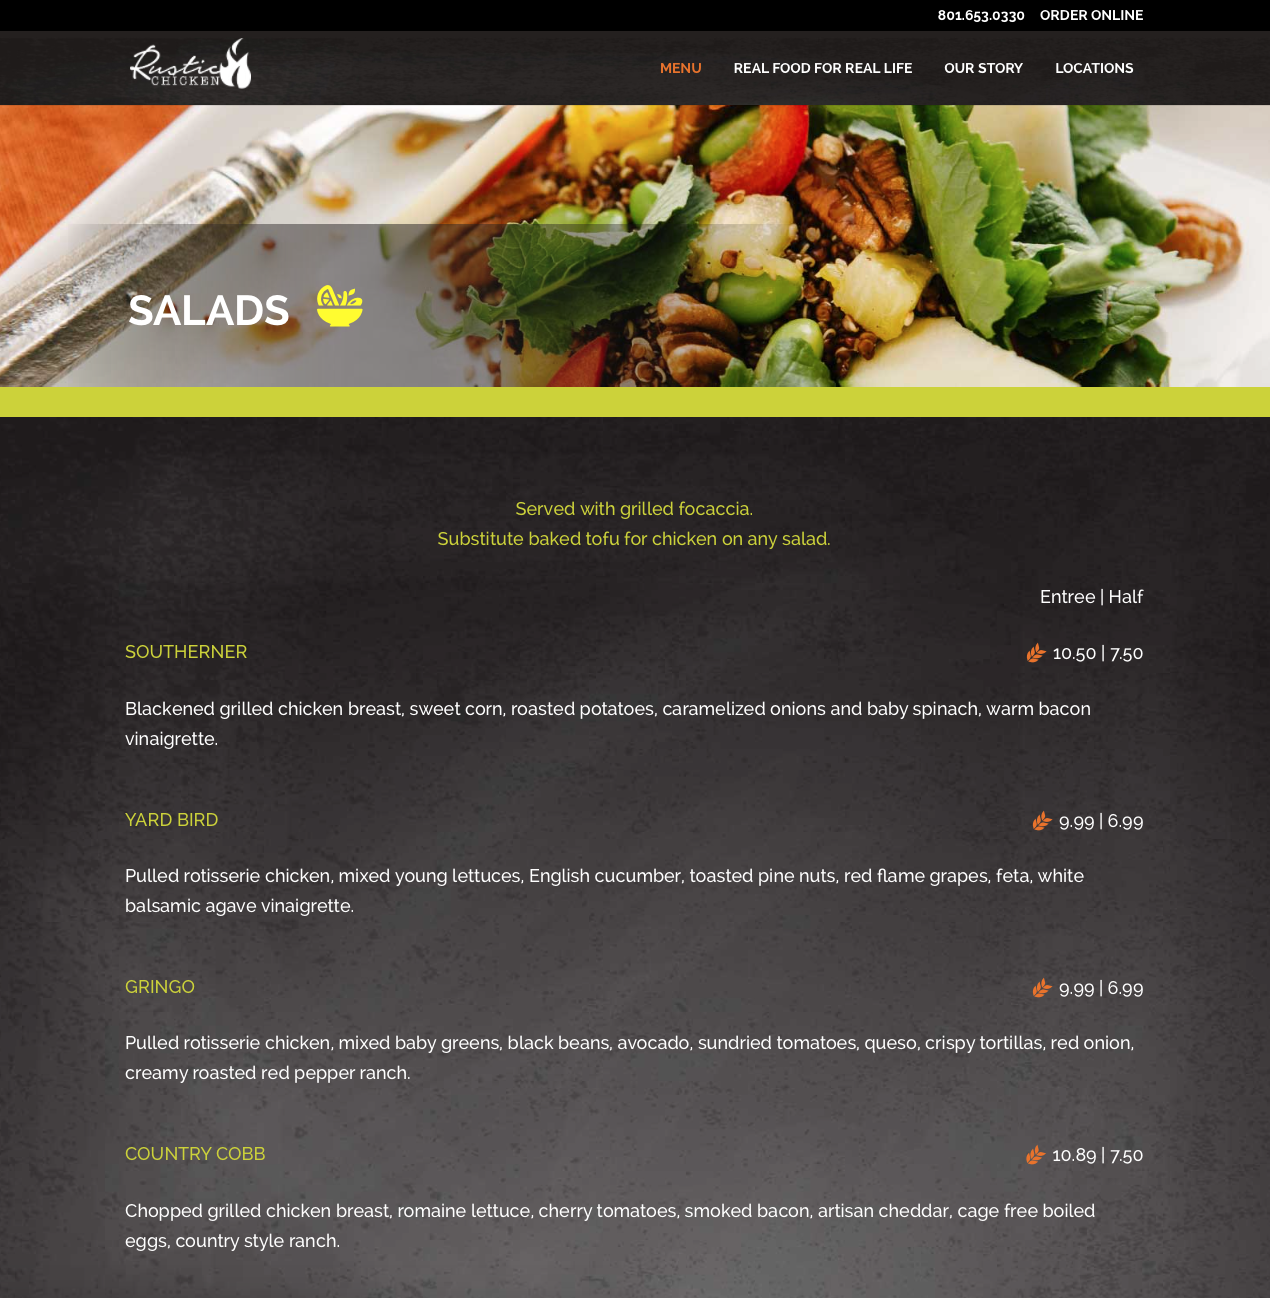 Rustic Chicken Menu Page